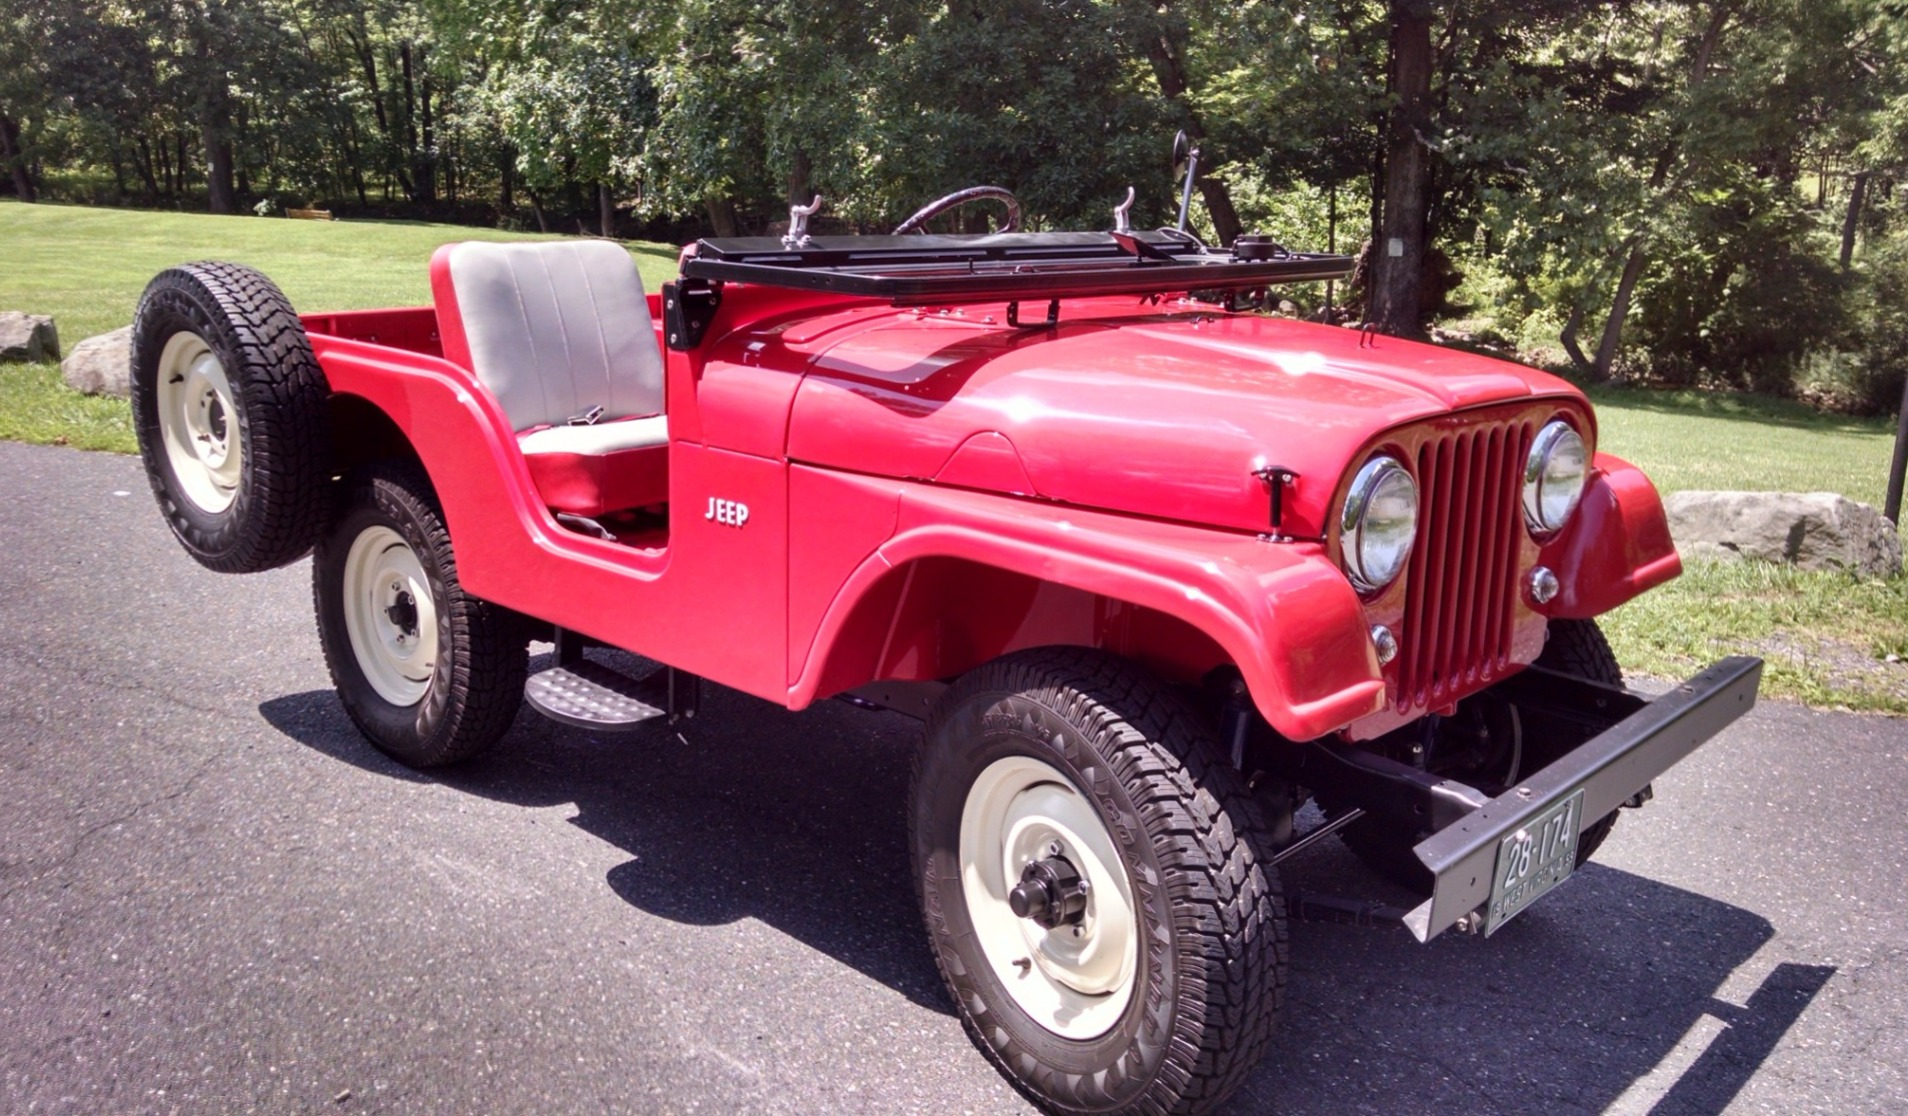 hight resolution of restored 1959 jeep cj5 for sale on bat auctions sold for 12 000 on april 30 2018 lot 9 328 bring a trailer